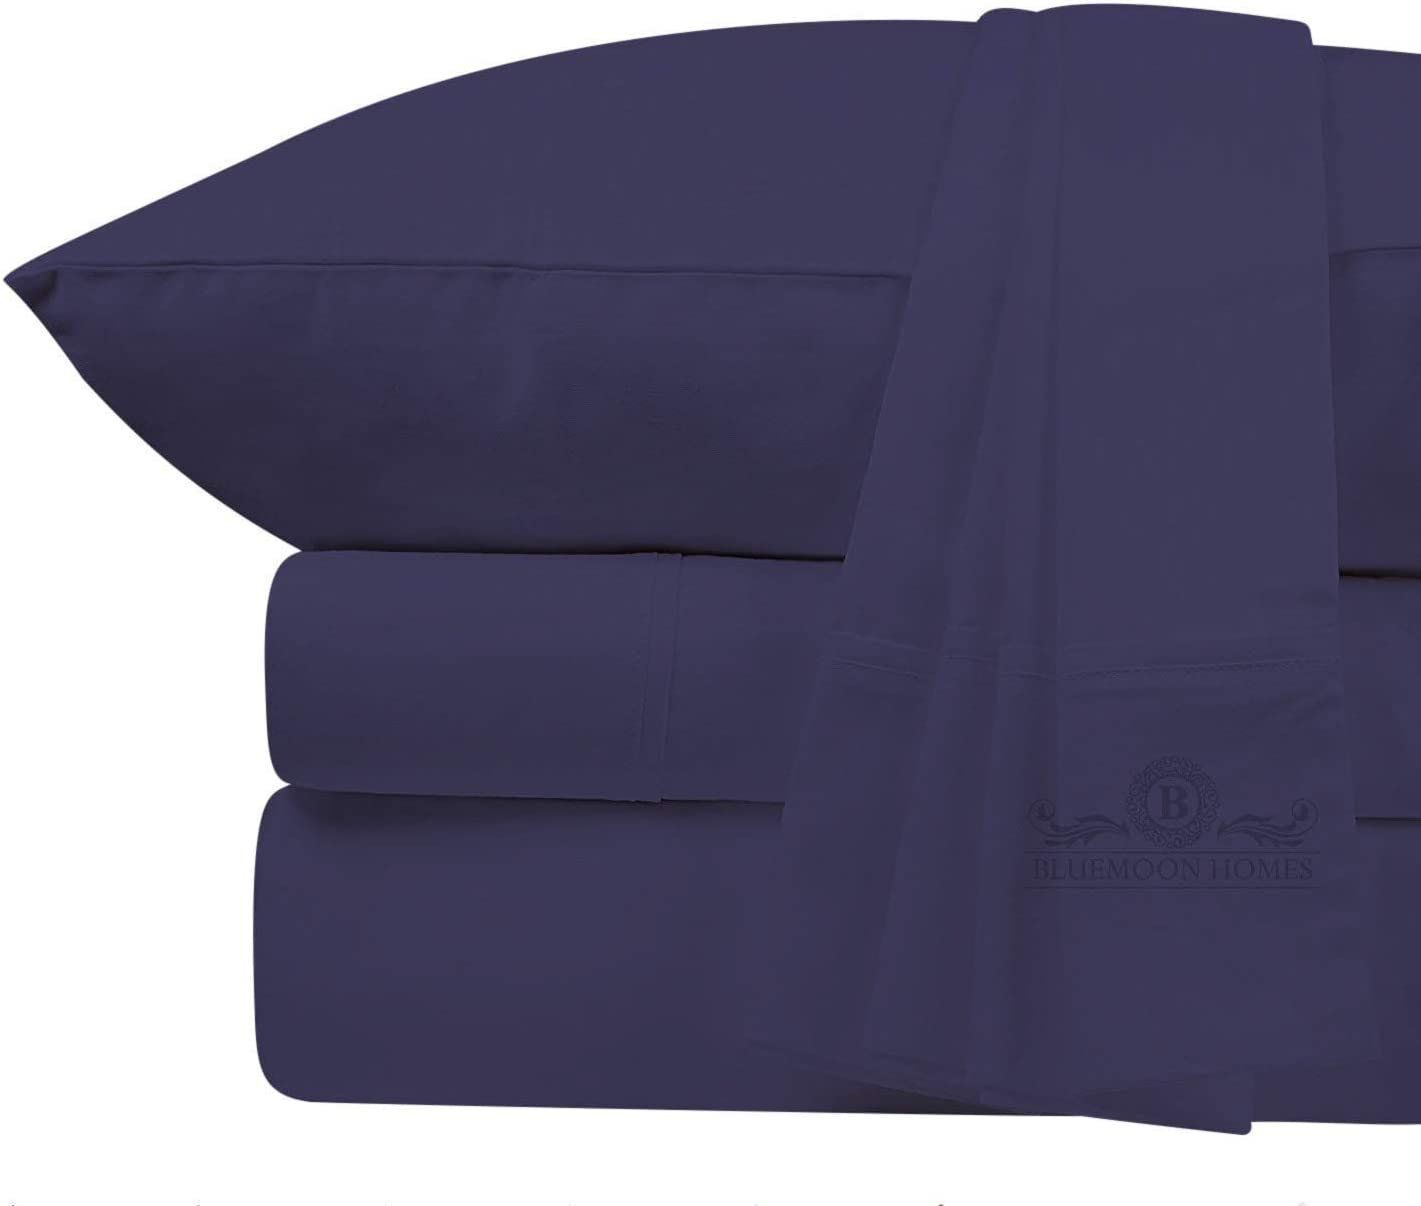 800-Thread-Count Best 100% Egyptian Cotton Bed Sheet Set - Extra Long-Staple Cotton Queen Sheet for Bed, Fits Mattress Upto 18'' Deep Pocket, Breathable & Sateen Weave 4-Piece Sheets Set(Queen, Plum)